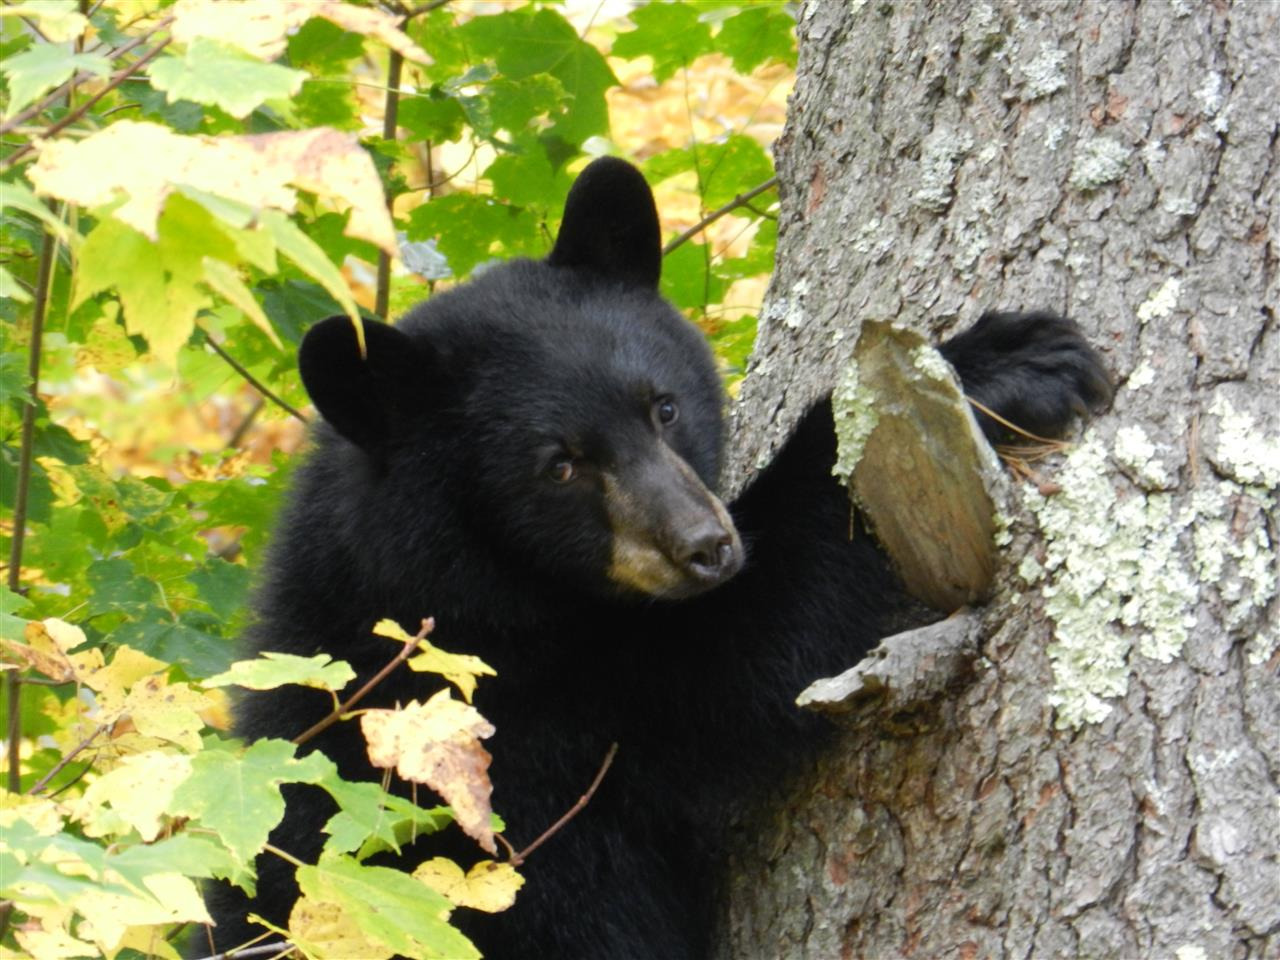 #Bartlett #New Hampshire #Black Bear Common and exciting... the sighting of the black bear is always a treat.